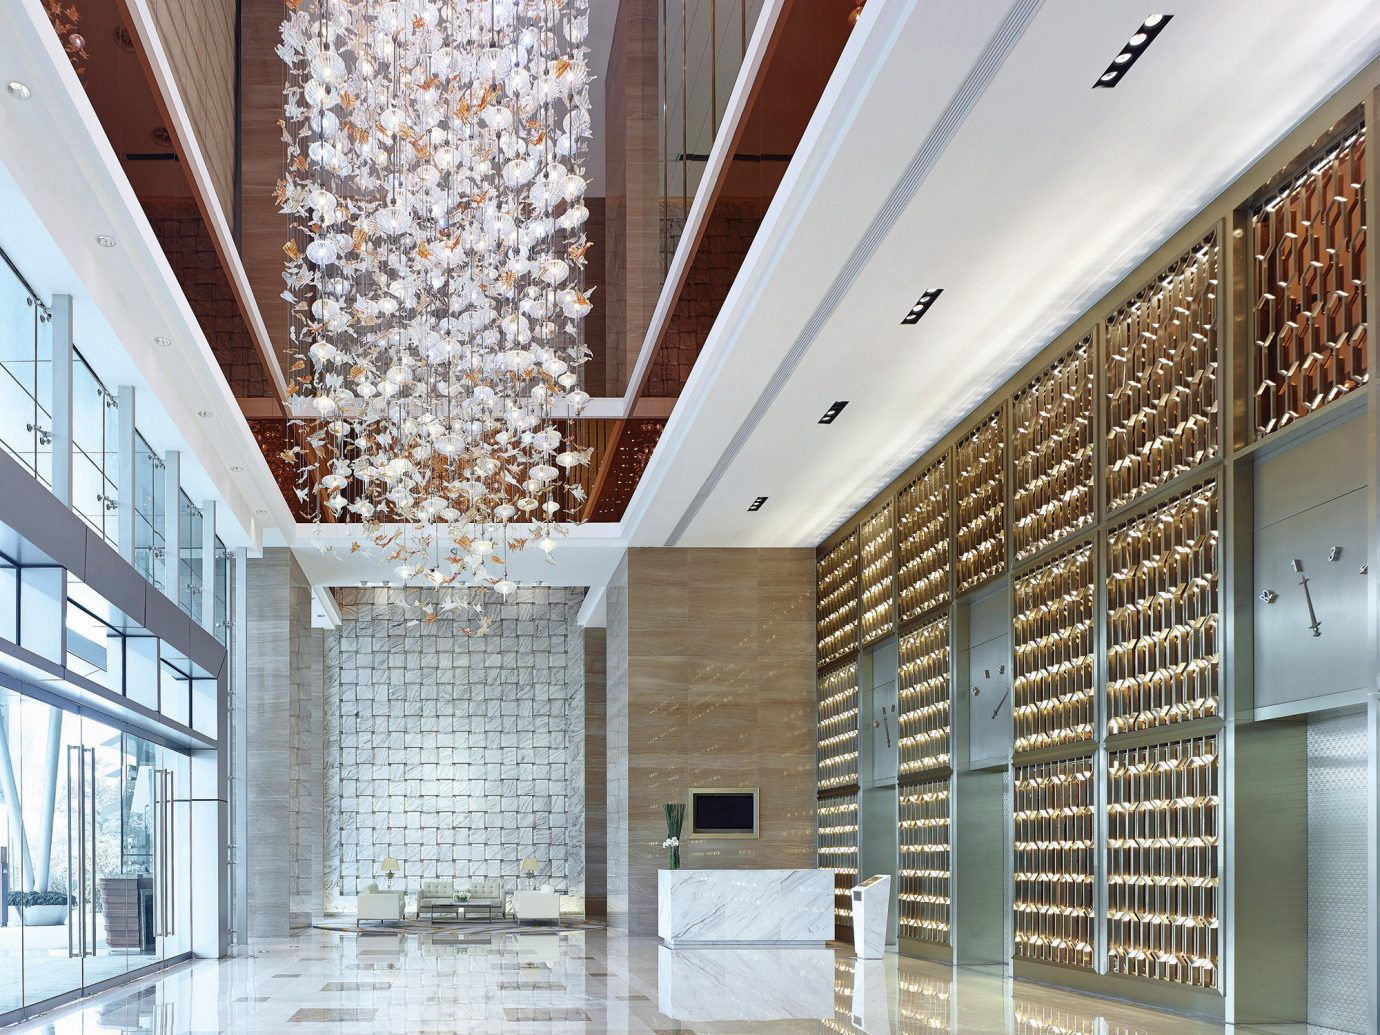 Hotels building Lobby ceiling Architecture floor interior design daylighting estate hall lighting facade headquarters flooring Design window covering